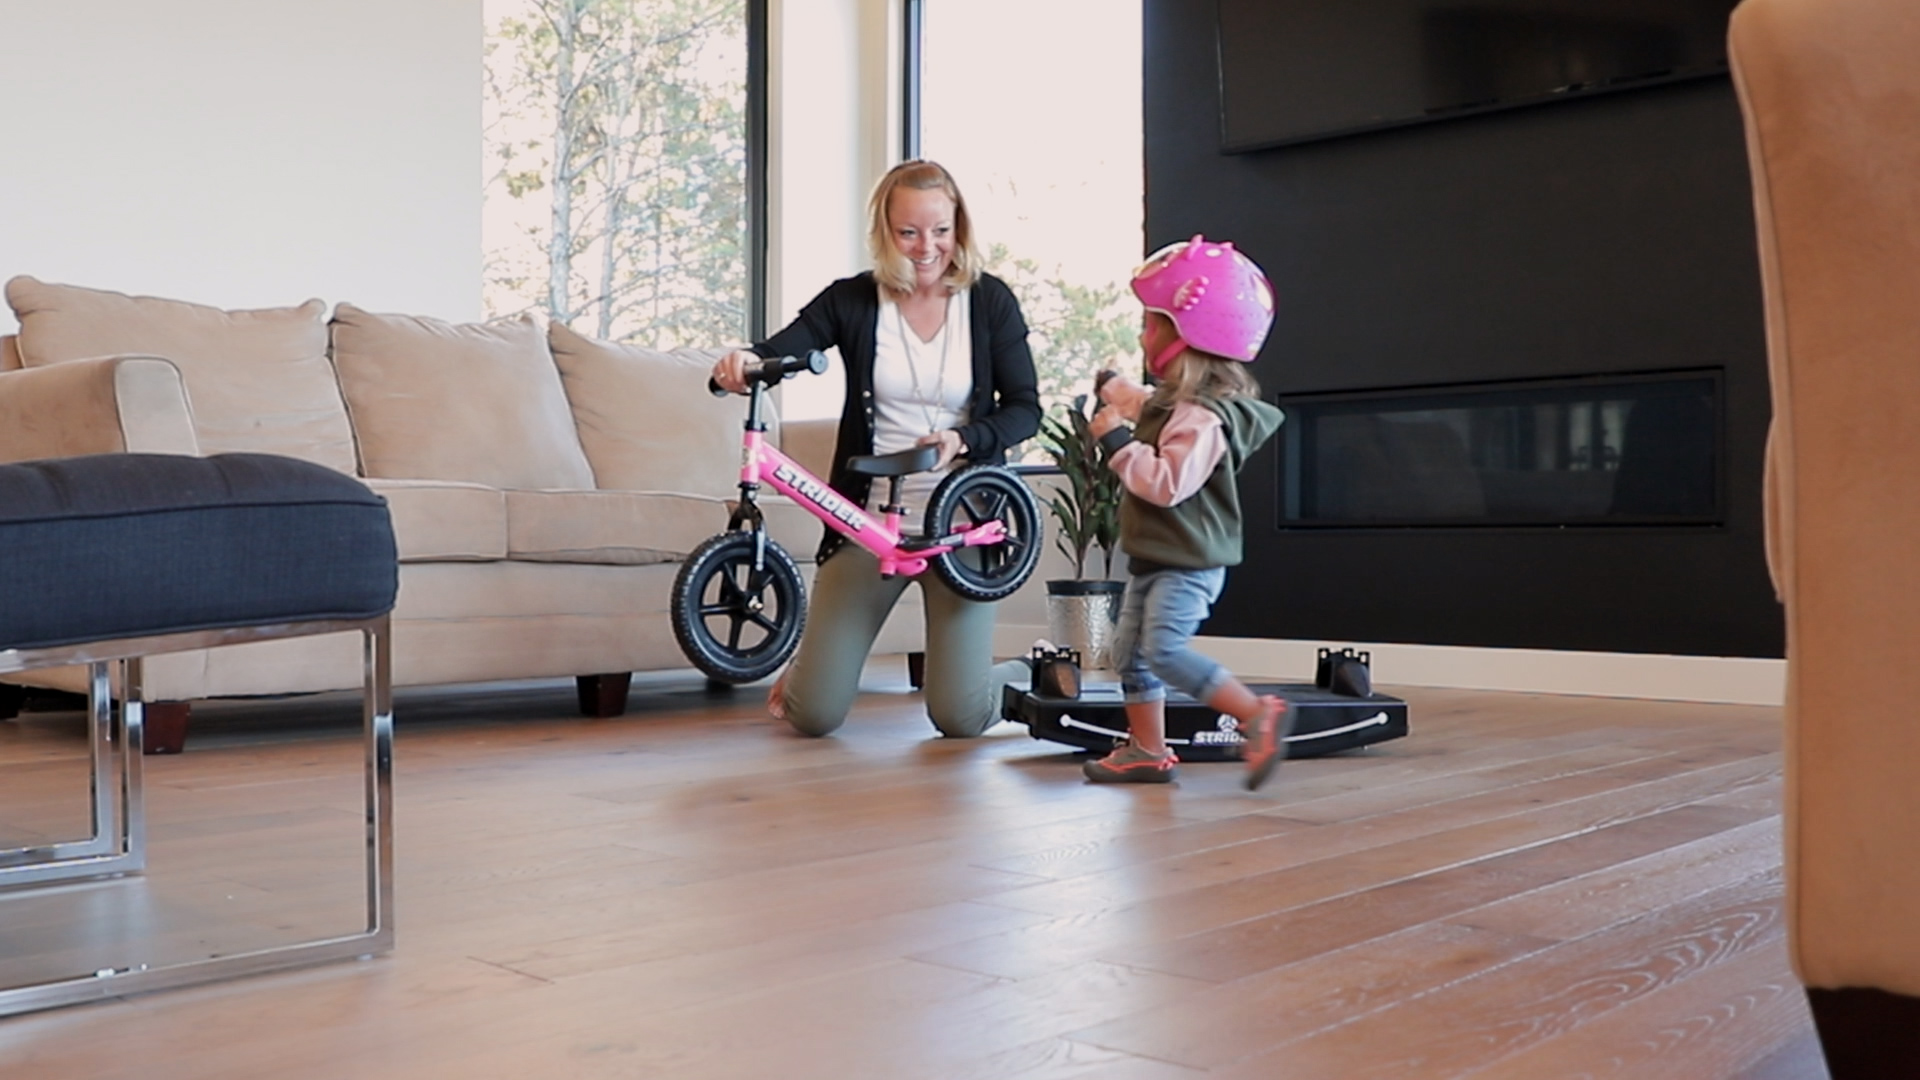 Mom removing pink 12 Sport 2-in-1 Rocking bike from base for little girl to ride